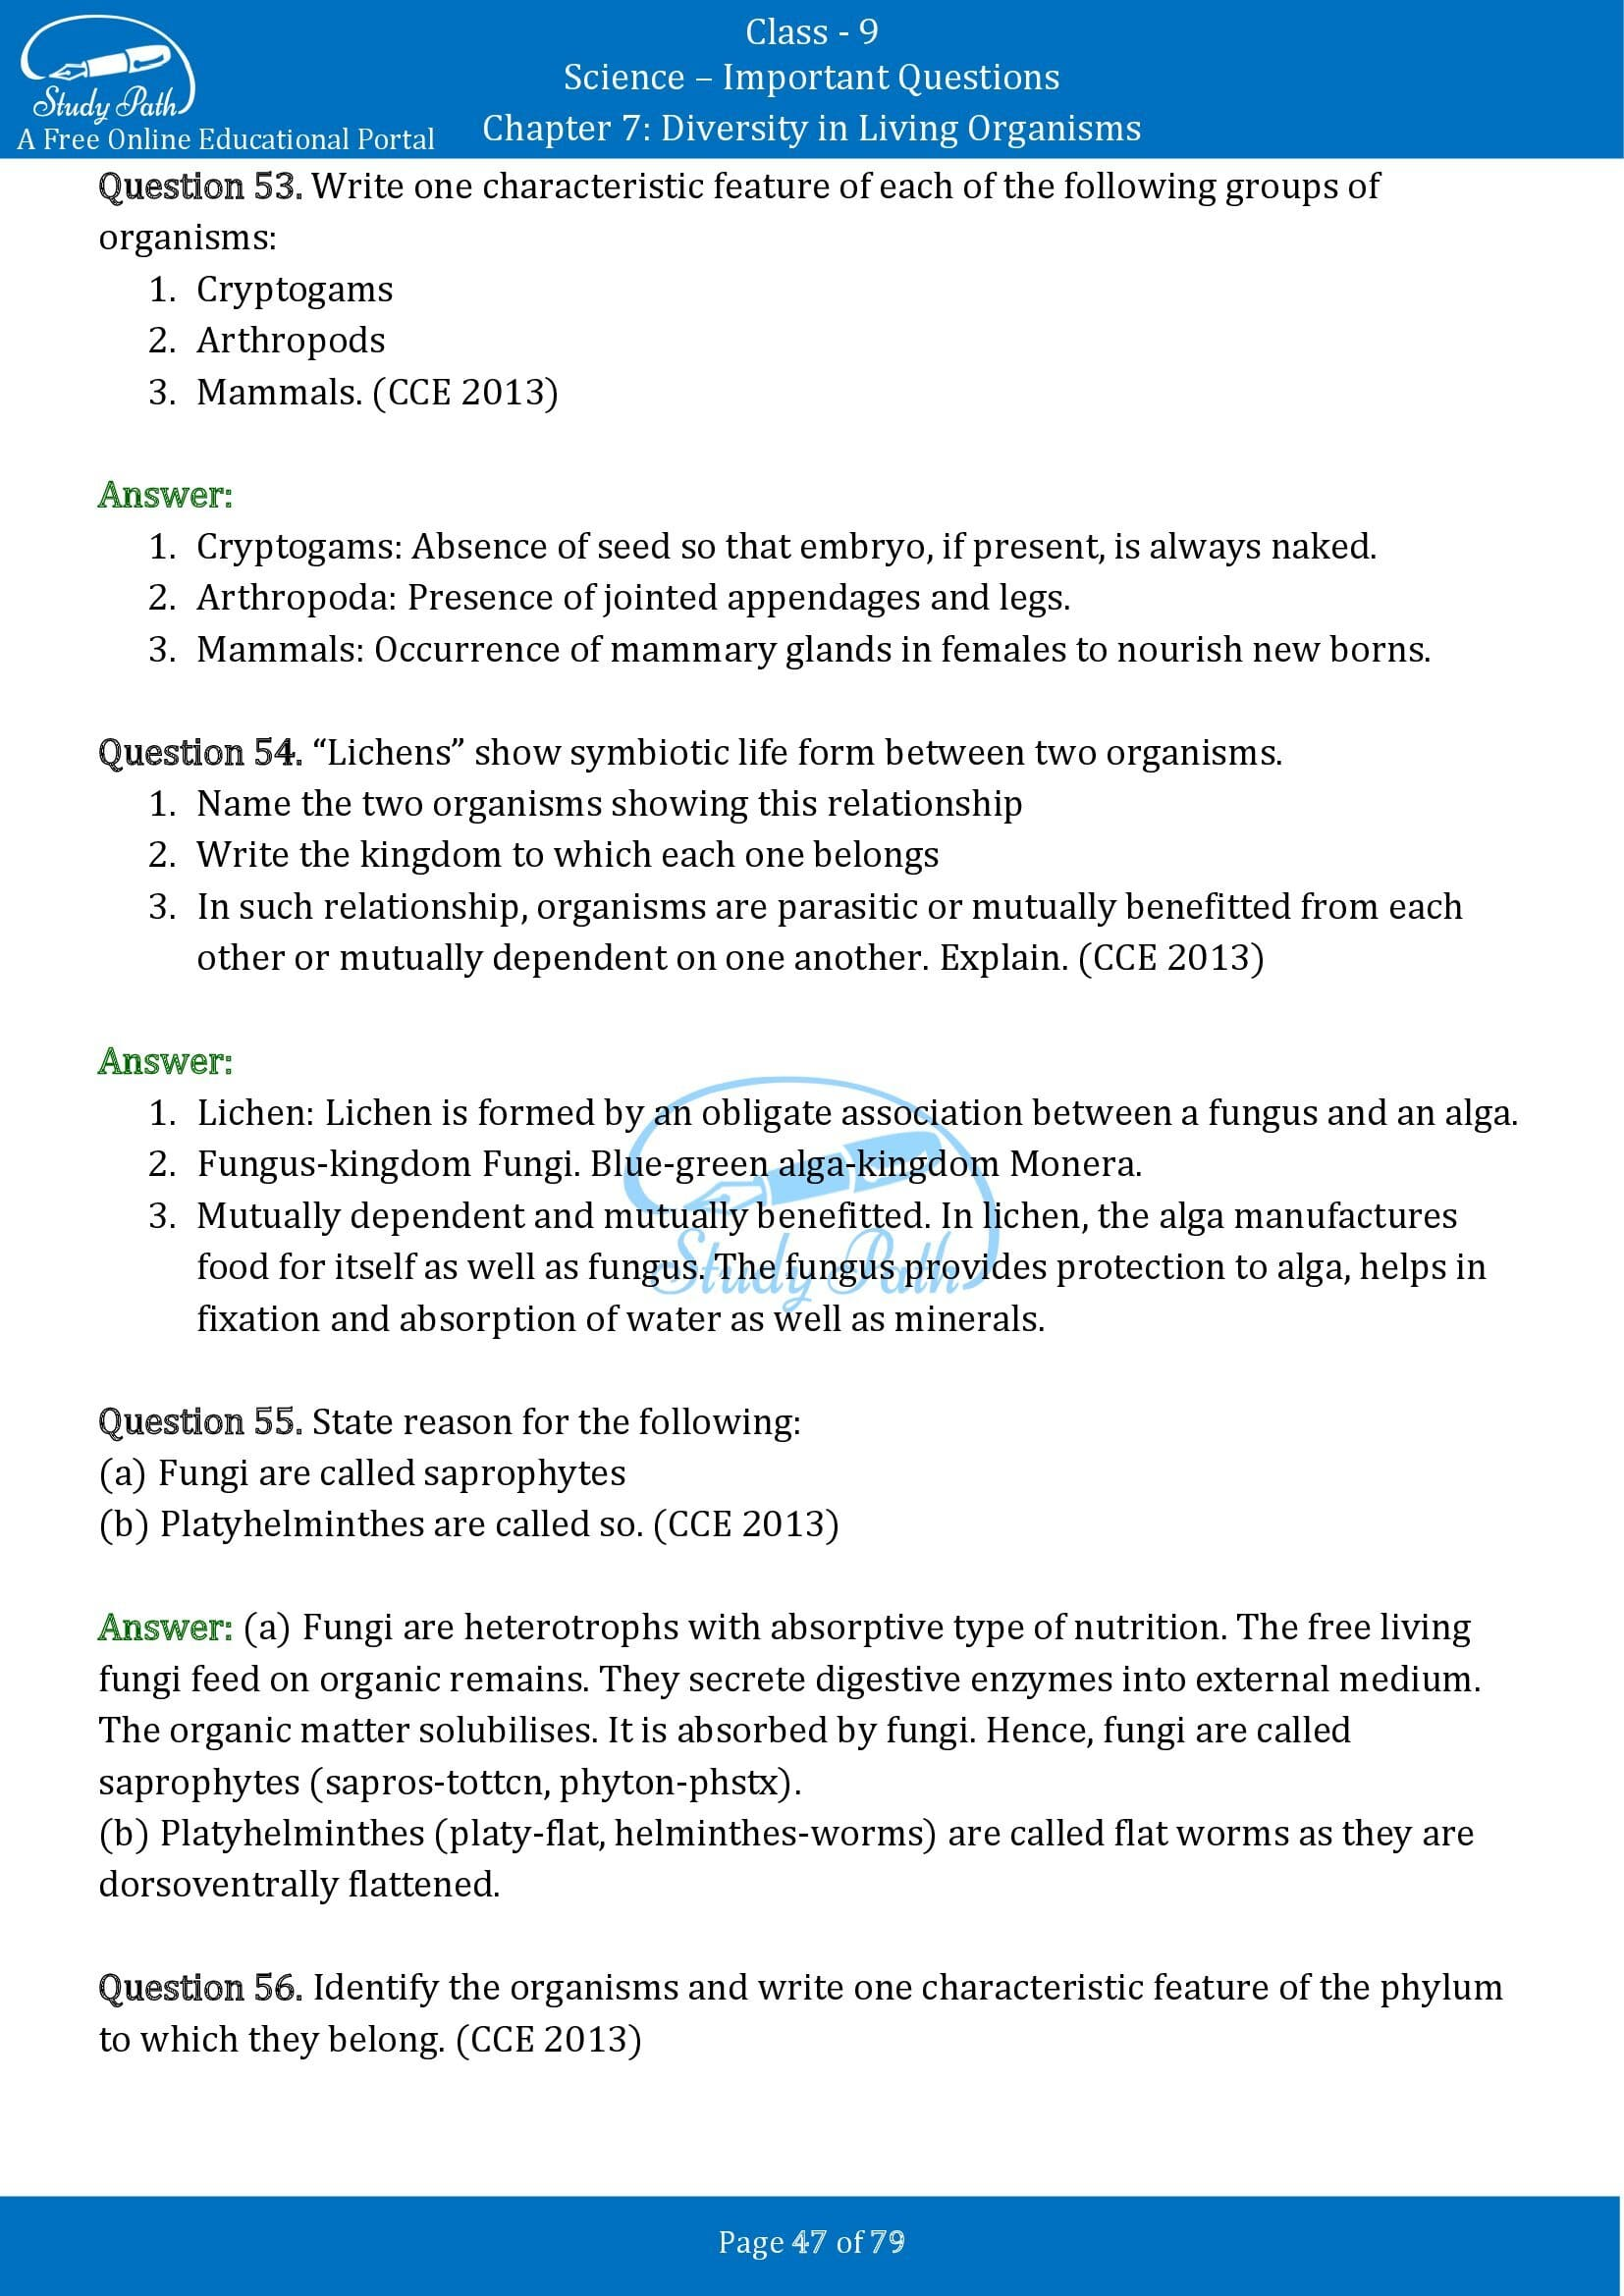 Important Questions for Class 9 Science Chapter 7 Diversity in Living Organisms 00047